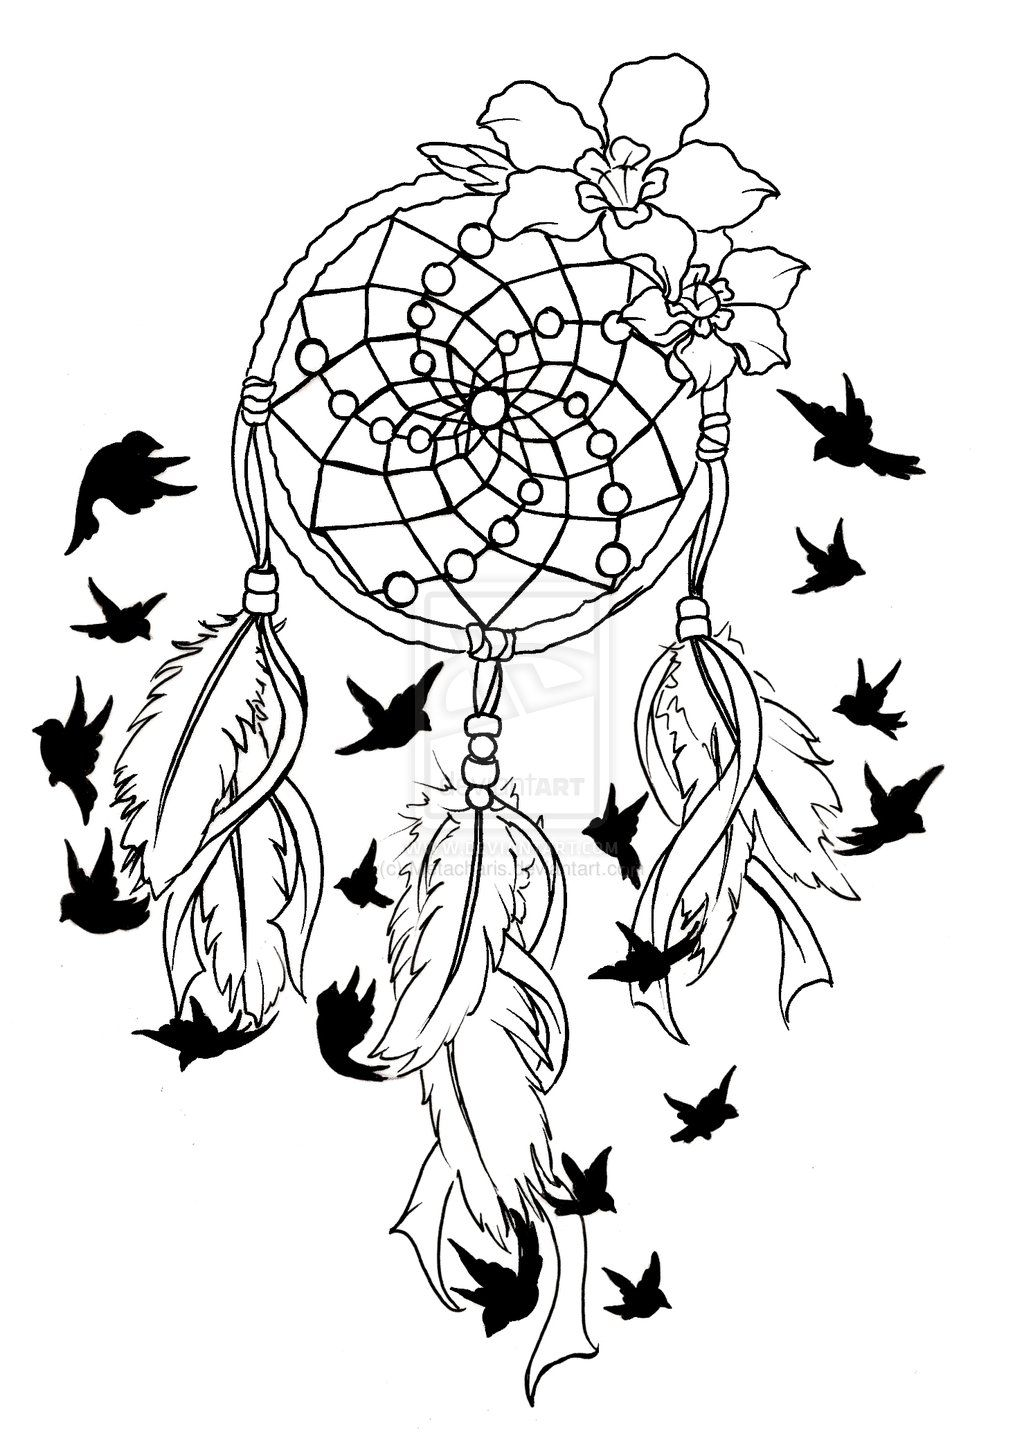 Coloring pages dream catchers - Dreamcatcher Birds Of A Feather Tattoo By Metacharis On Deviantart